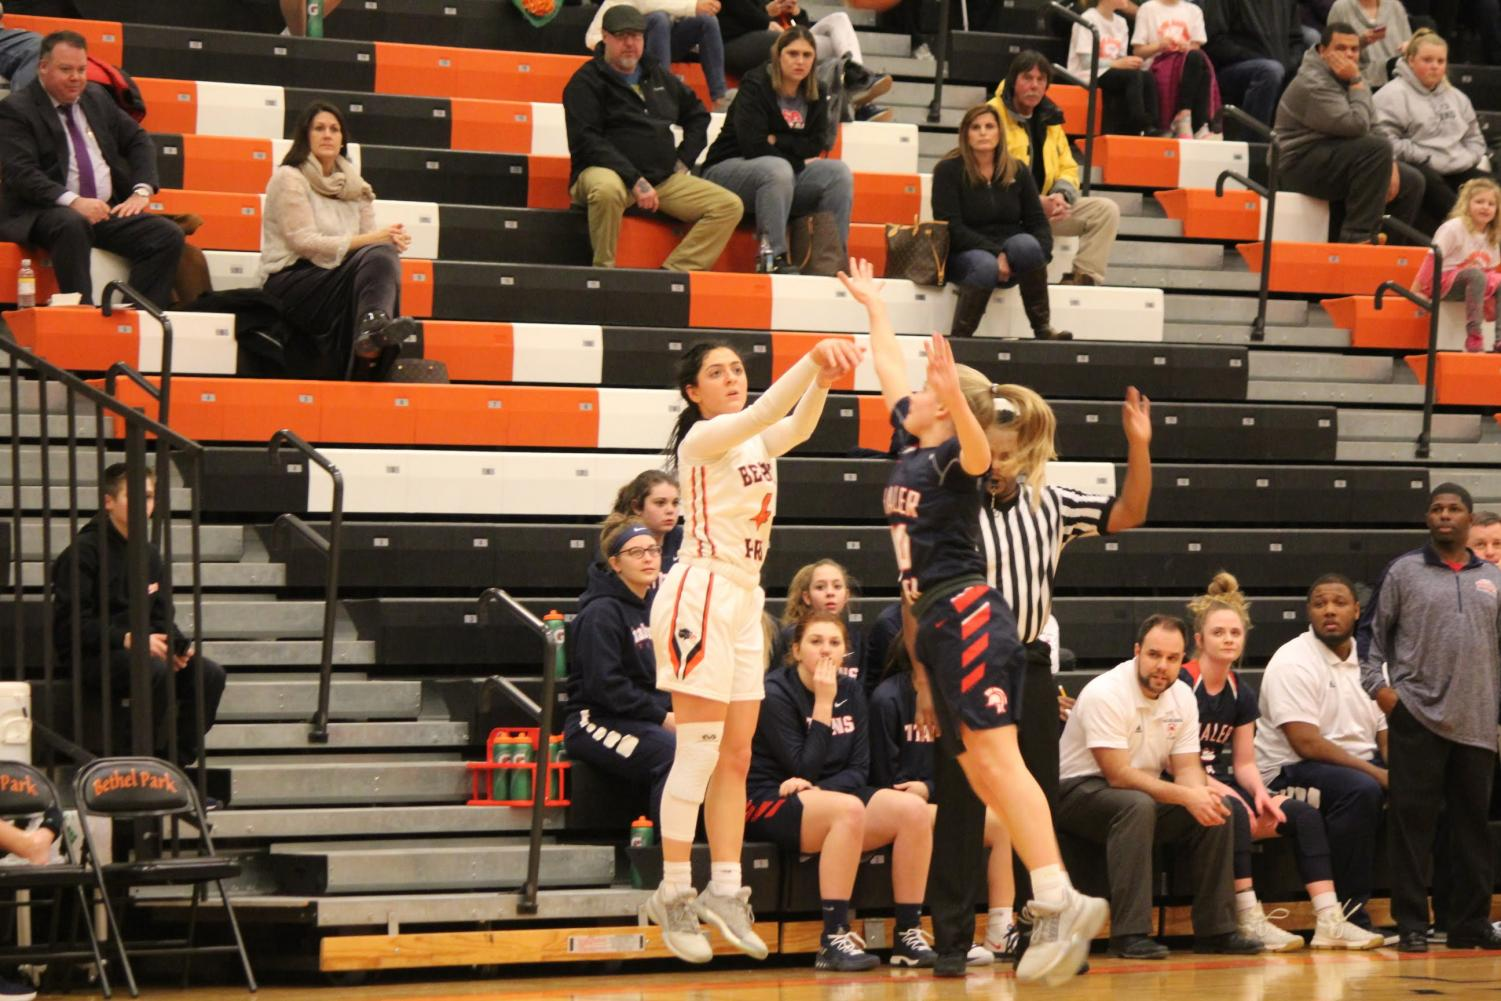 Maria Cerro jumps up for a shot during the Lady Hawks' game vs. Shaler on Feb. 9